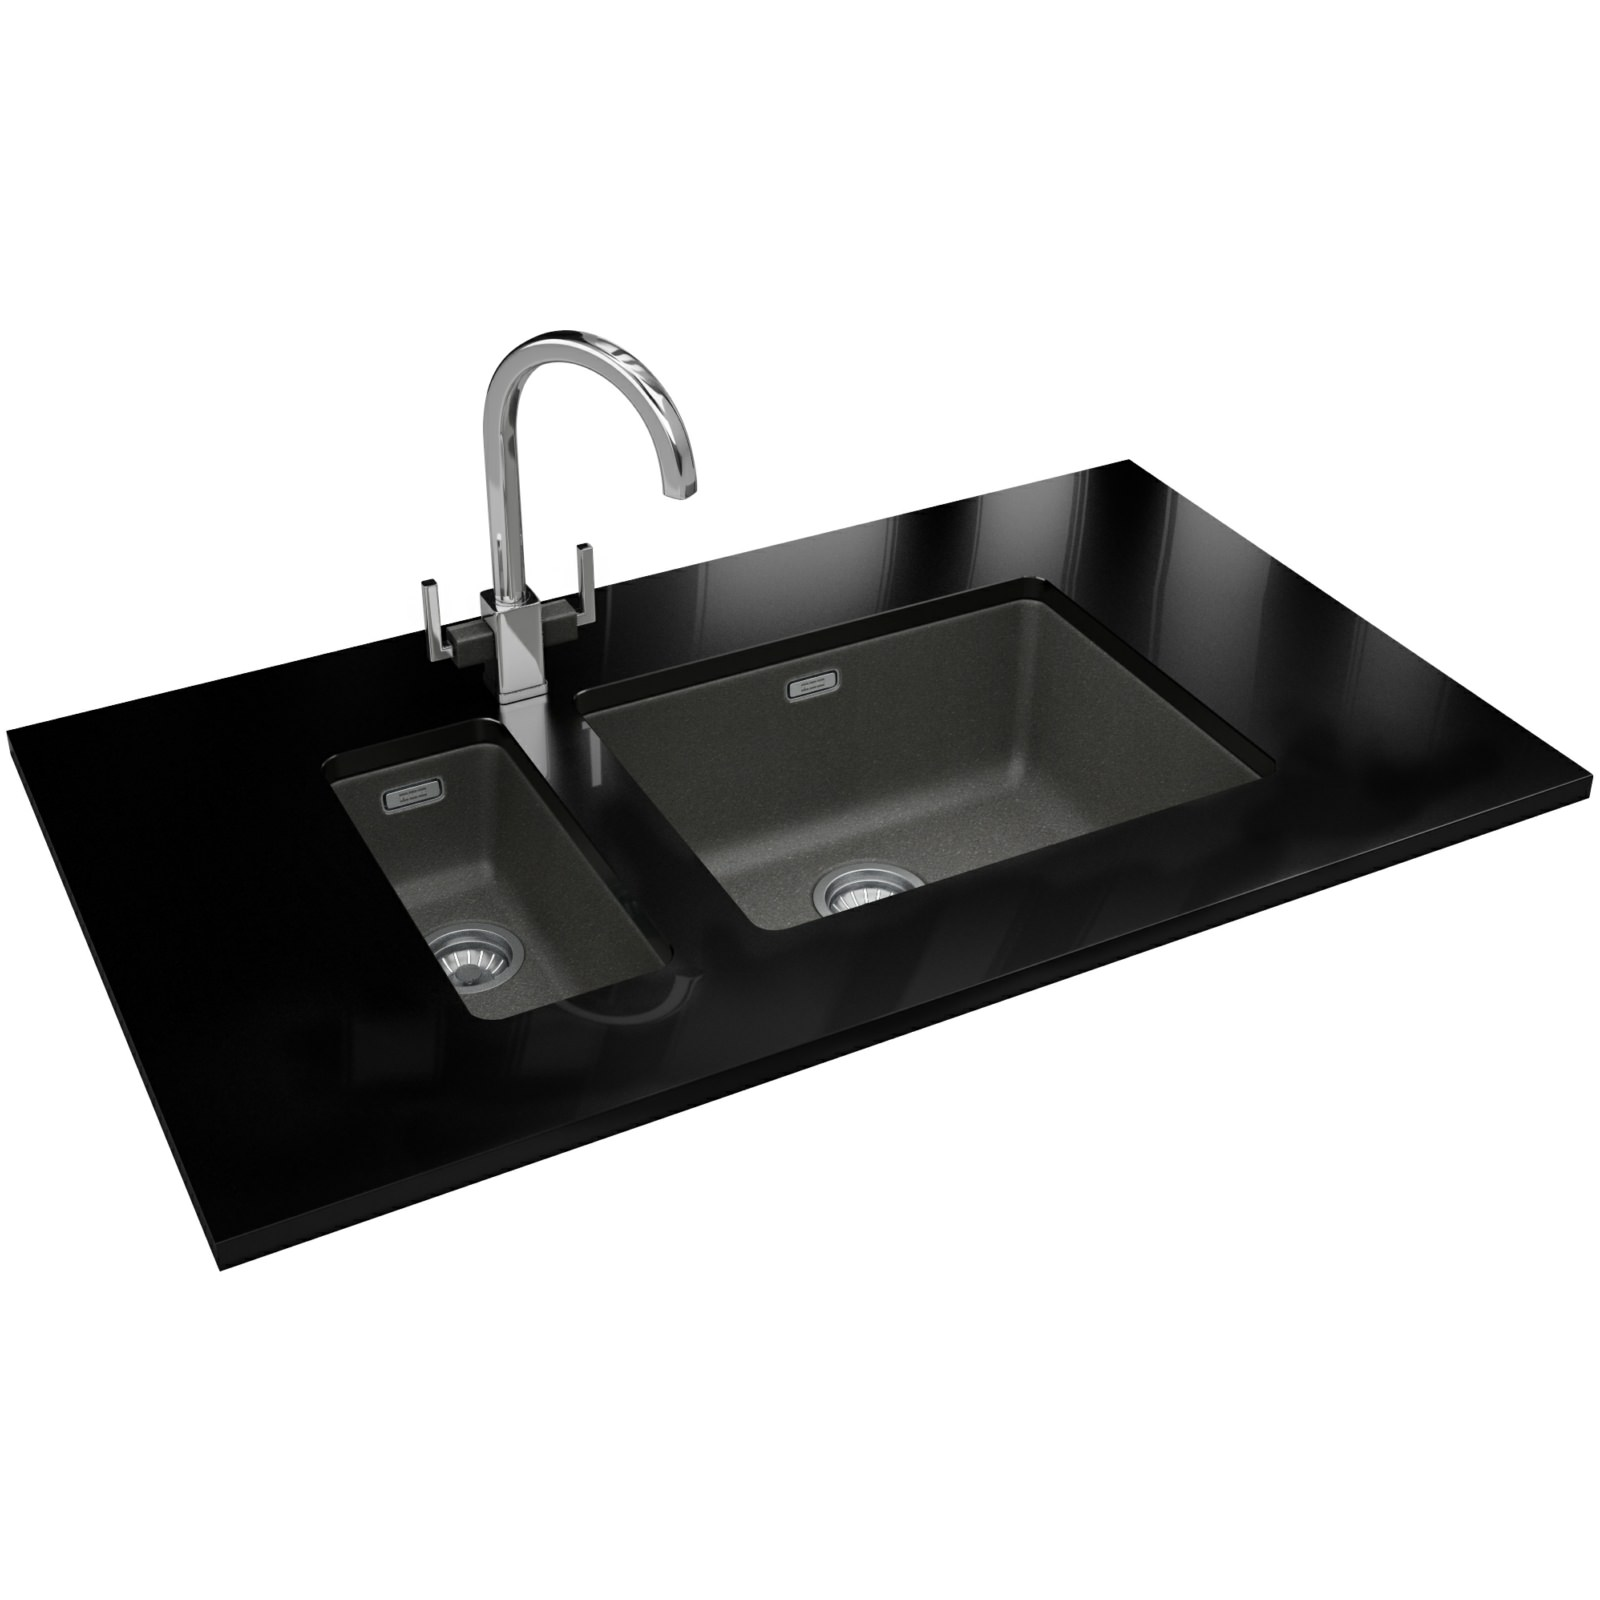 Franke Grey Sink : Franke Kubus DP KBG 110 16 + KBG 110 50 Fragranite Stone Grey Sink And ...